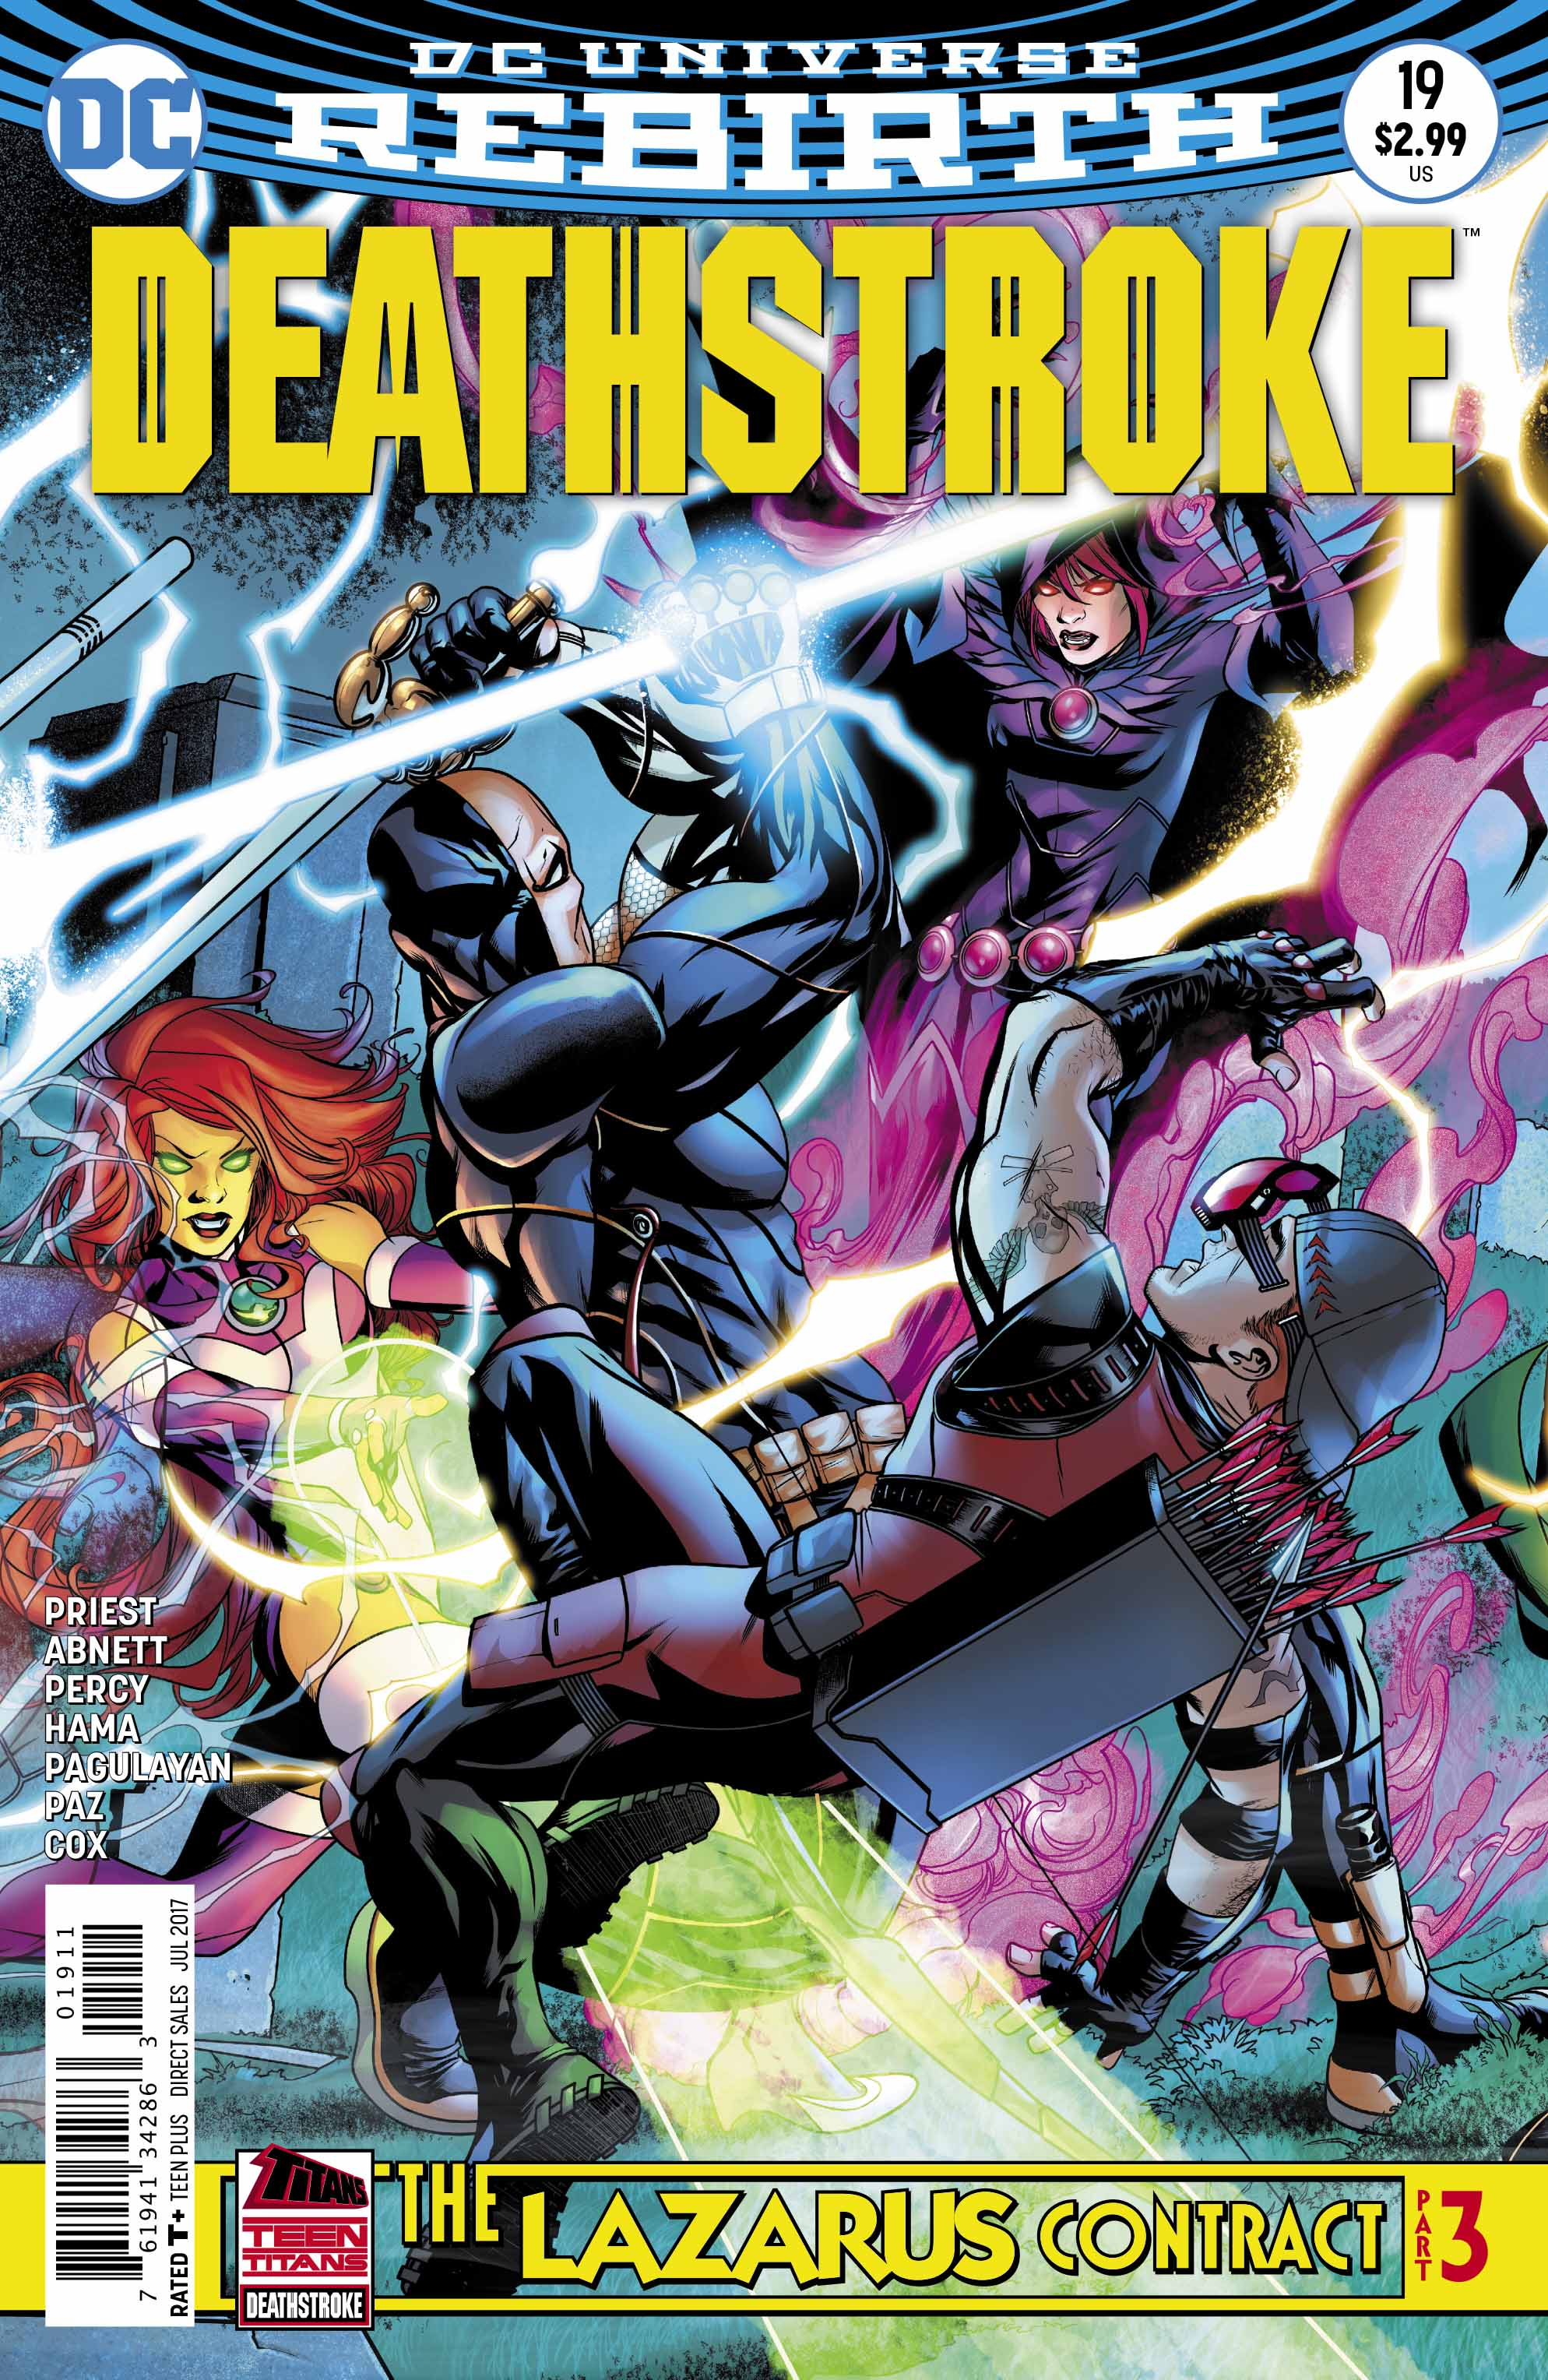 Preview: Deathstroke #19